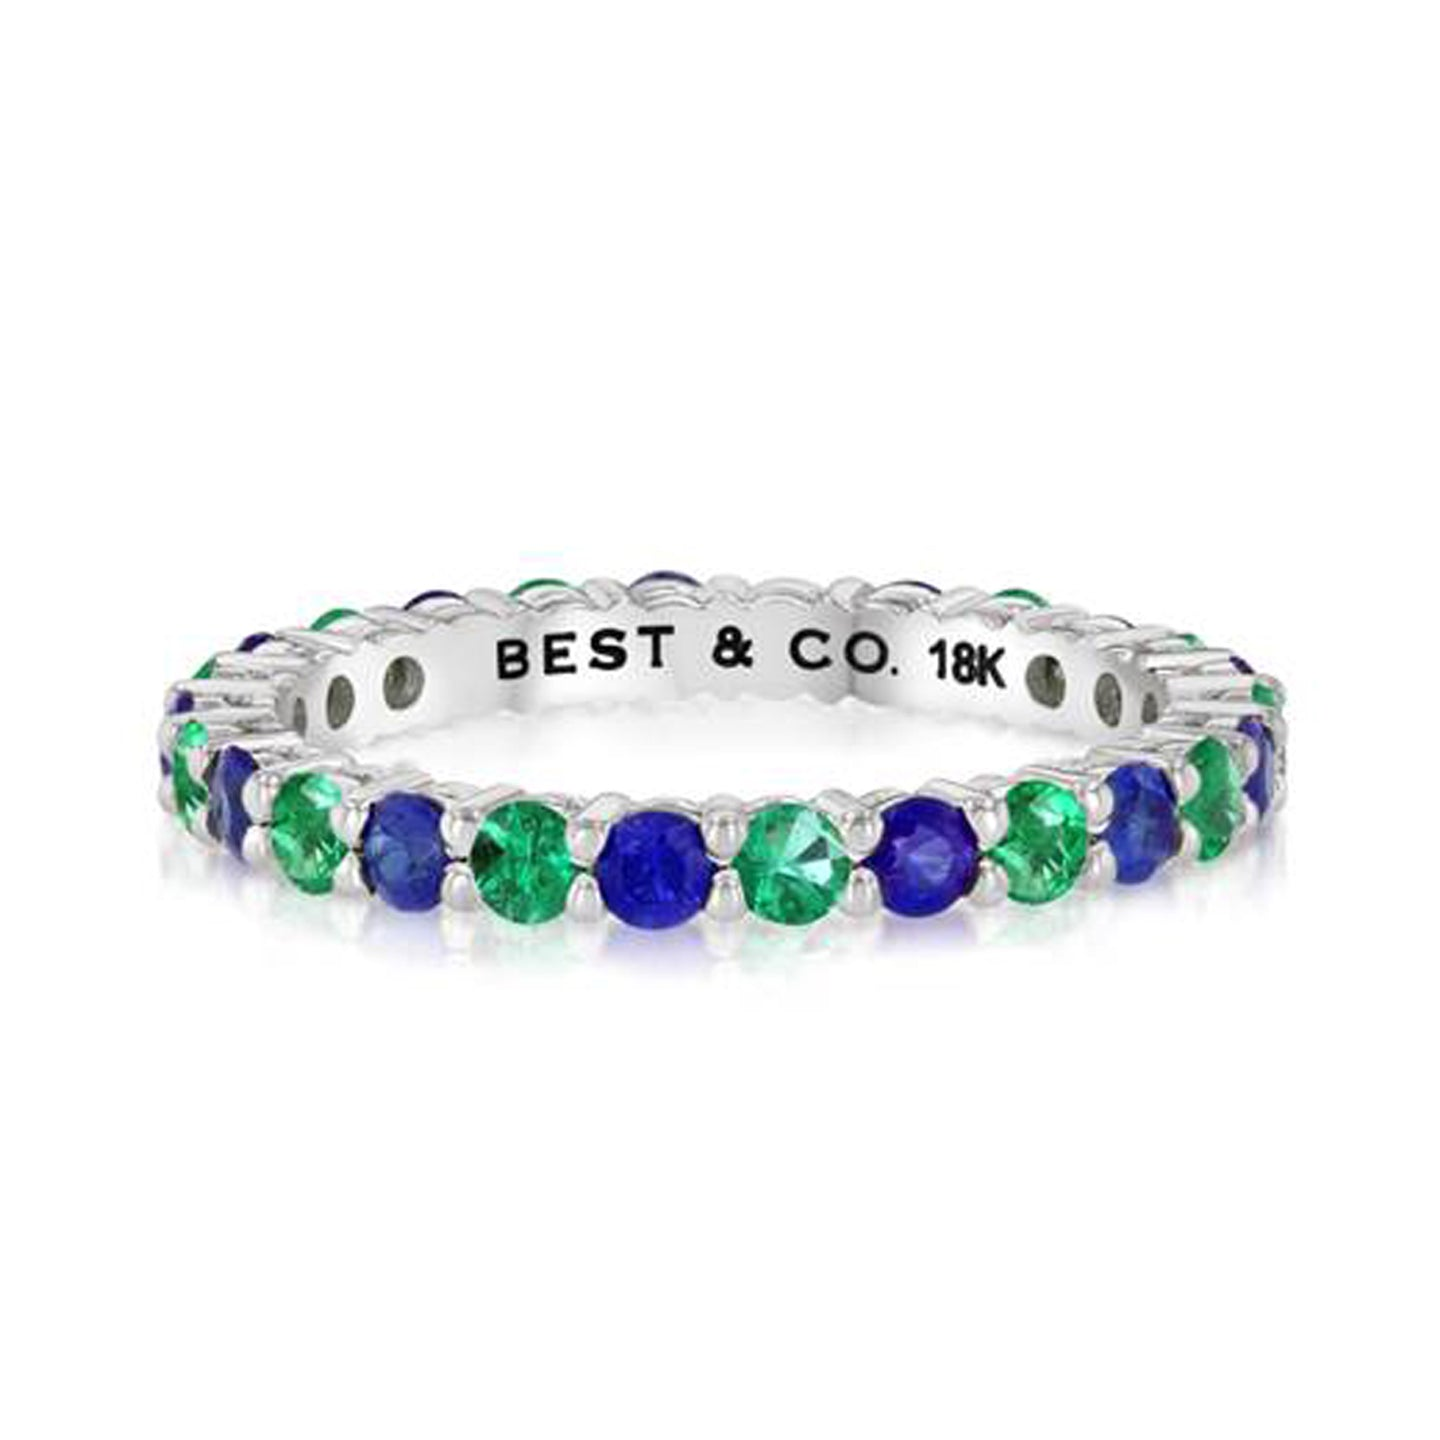 The ACDS Ring - Best & Co.